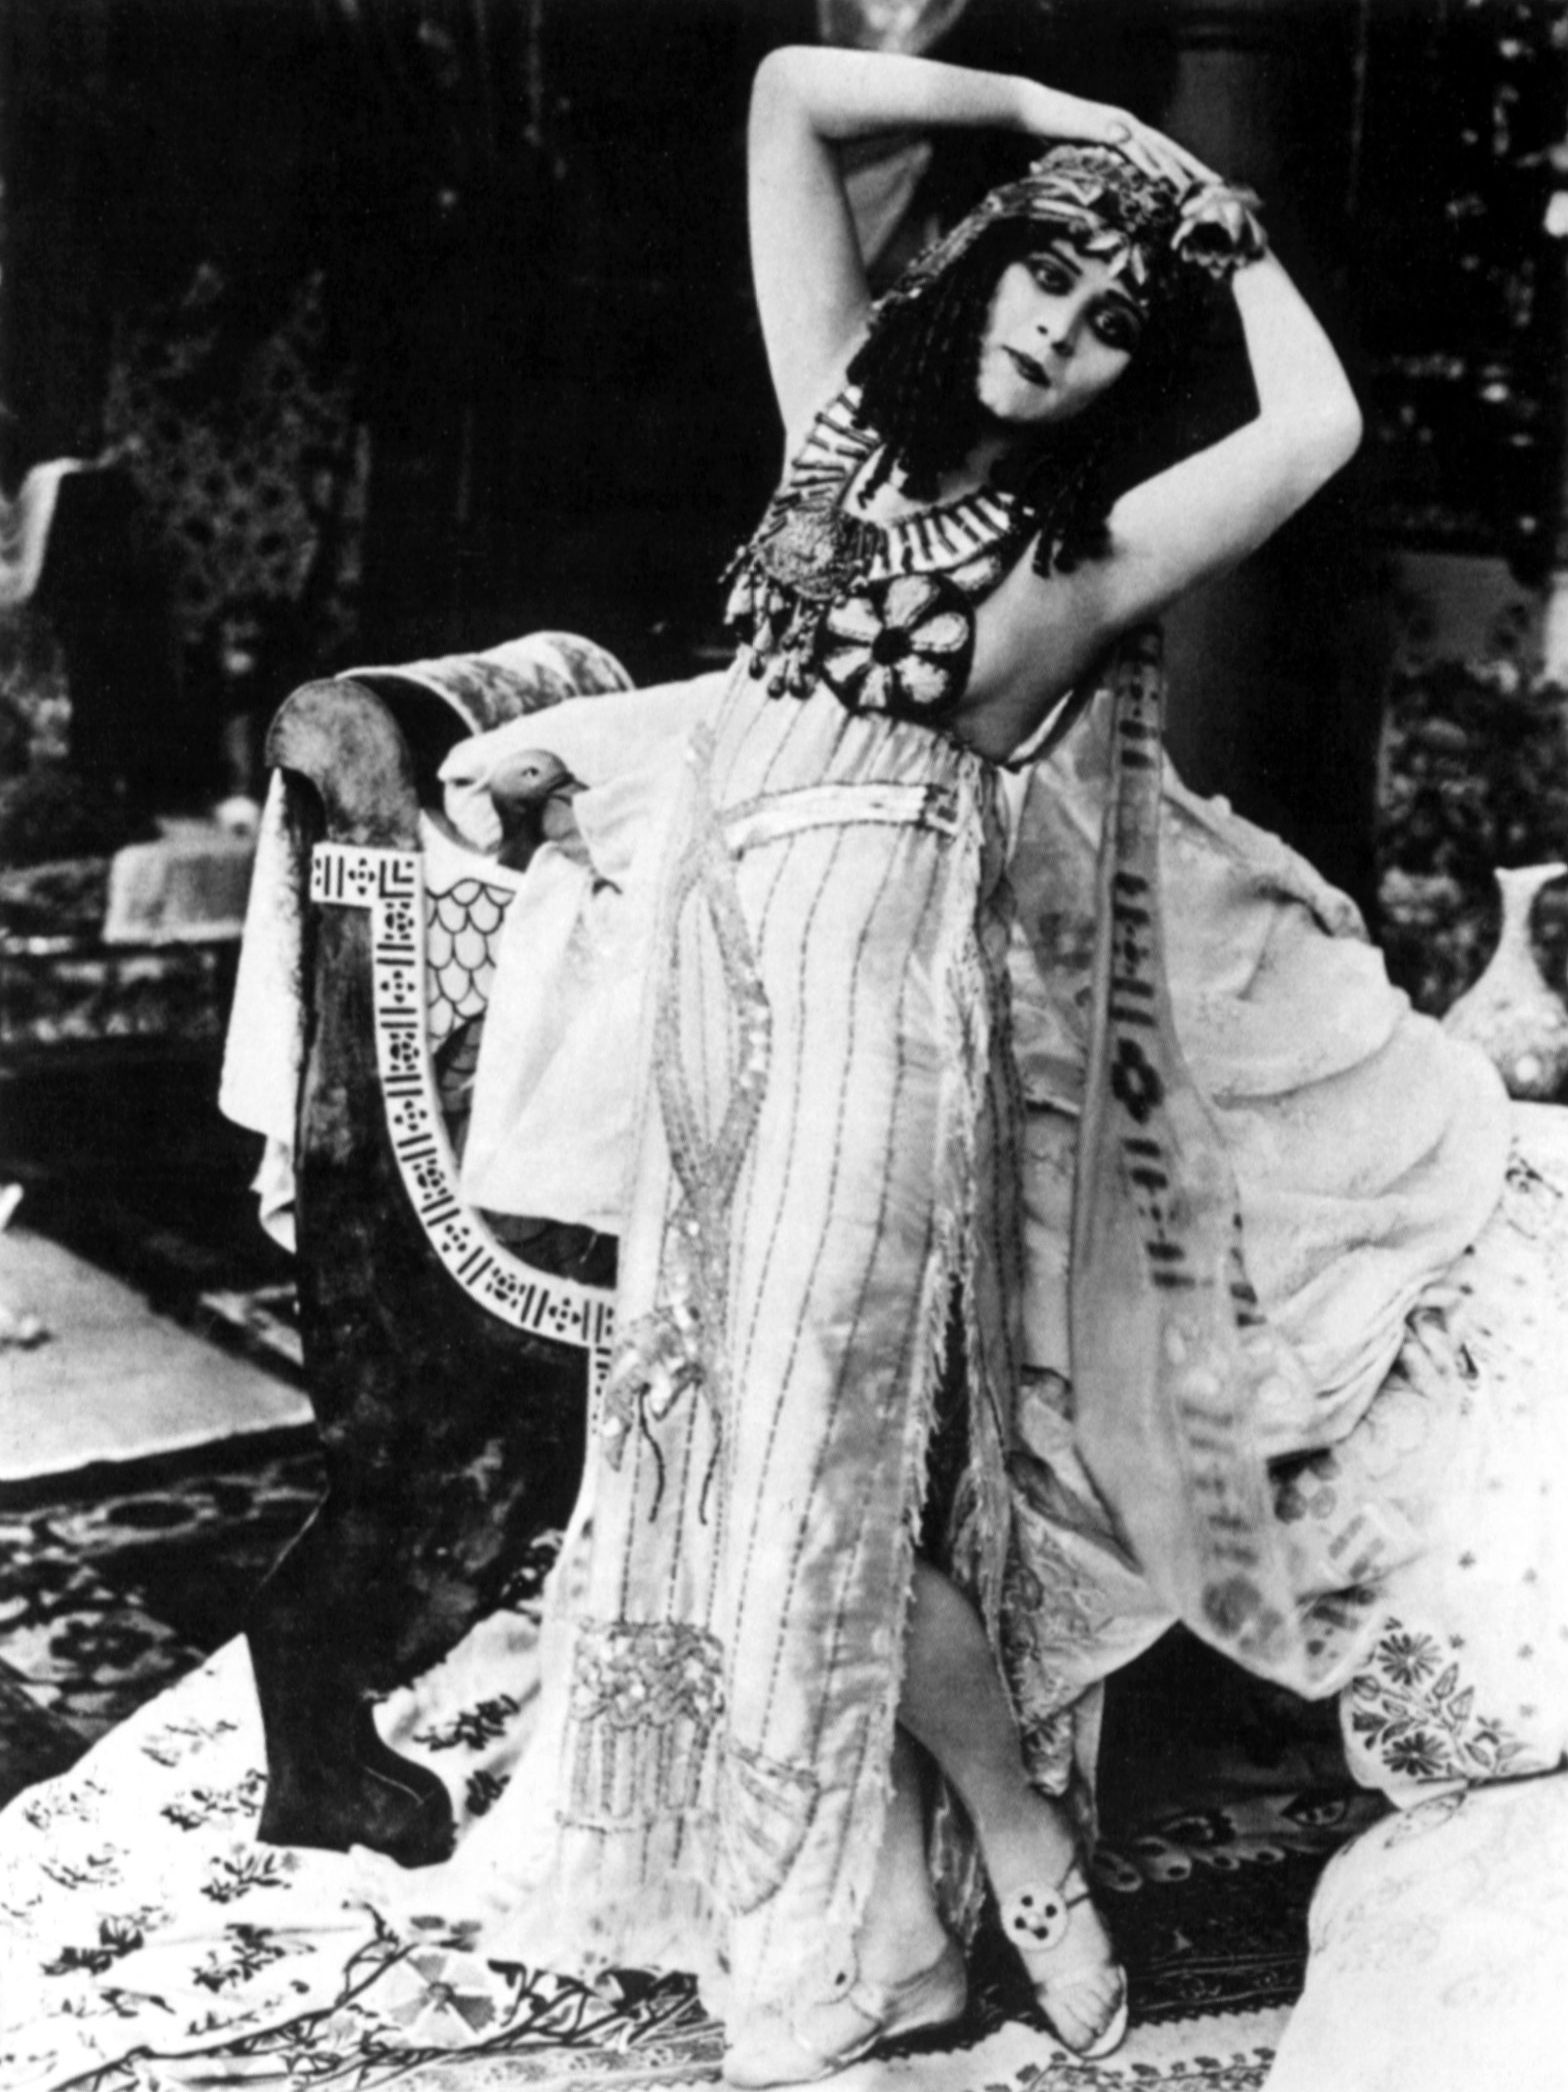 theda bara madame du barrytheda bara marilyn monroe, theda bara cleopatra, theda bara old, theda bara gif, theda bara madame du barry, theda bara, theda bara quotes, theda bara makeup, theda bara wiki, theda bara photos, theda bara youtube, theda bara tumblr, theda bara pronunciation, theda bara maringa, theda bara biography, theda bara house, theda bara salome, theda bara clothes, theda bara biografia, theda bara imdb